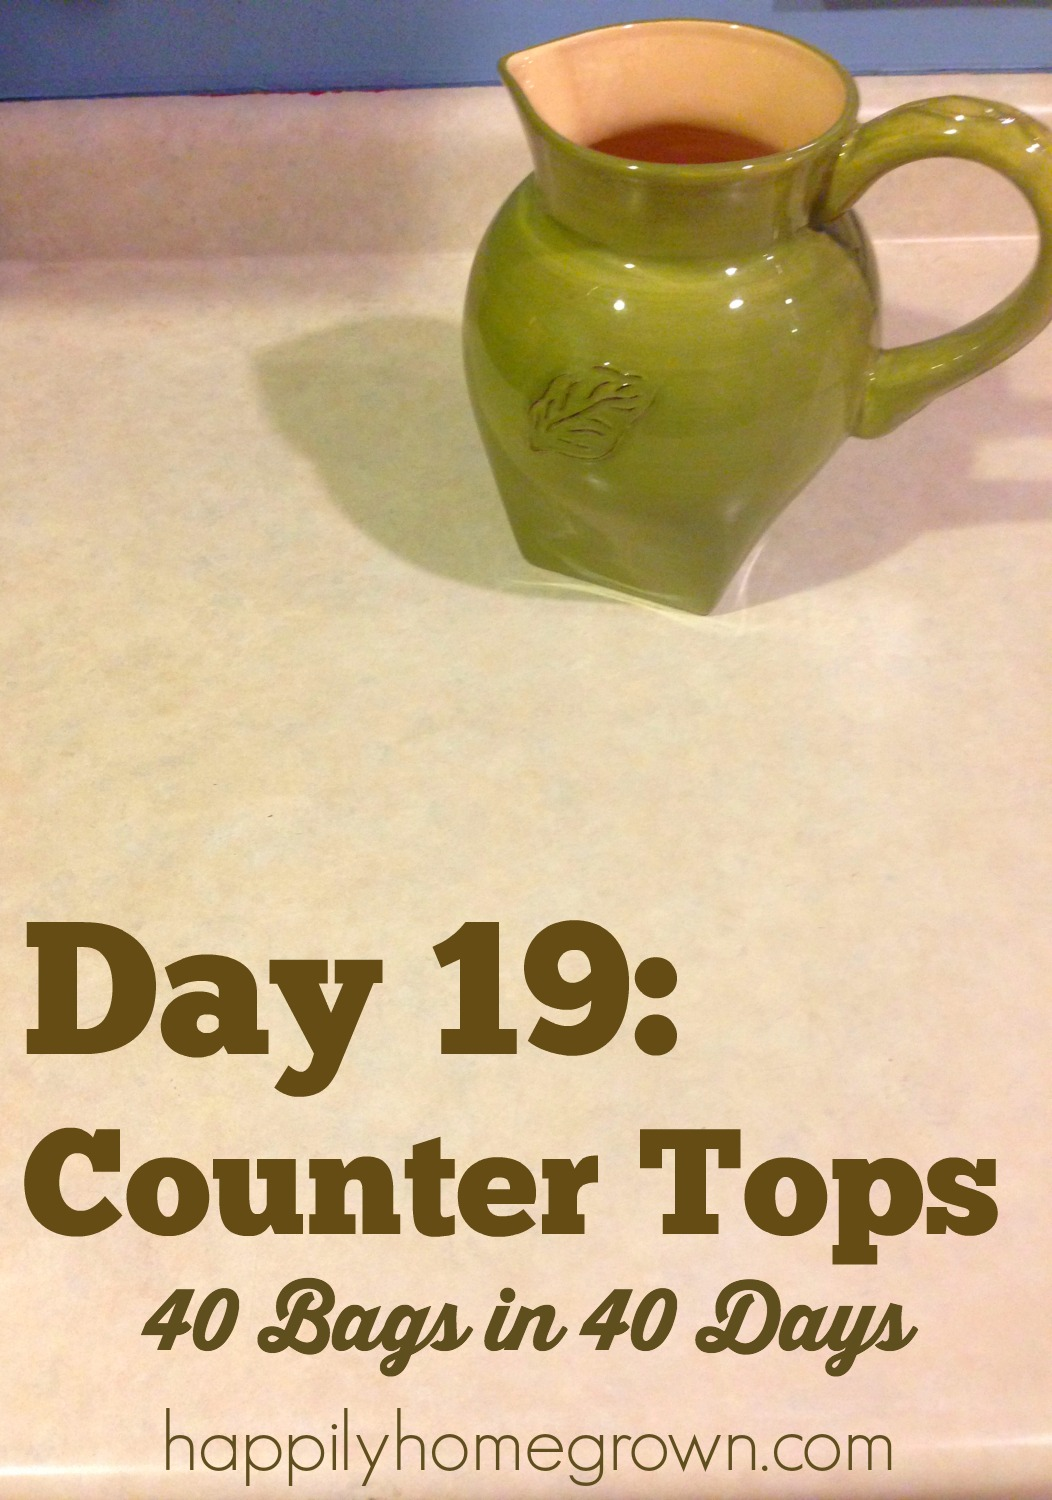 Day 19 counter tops